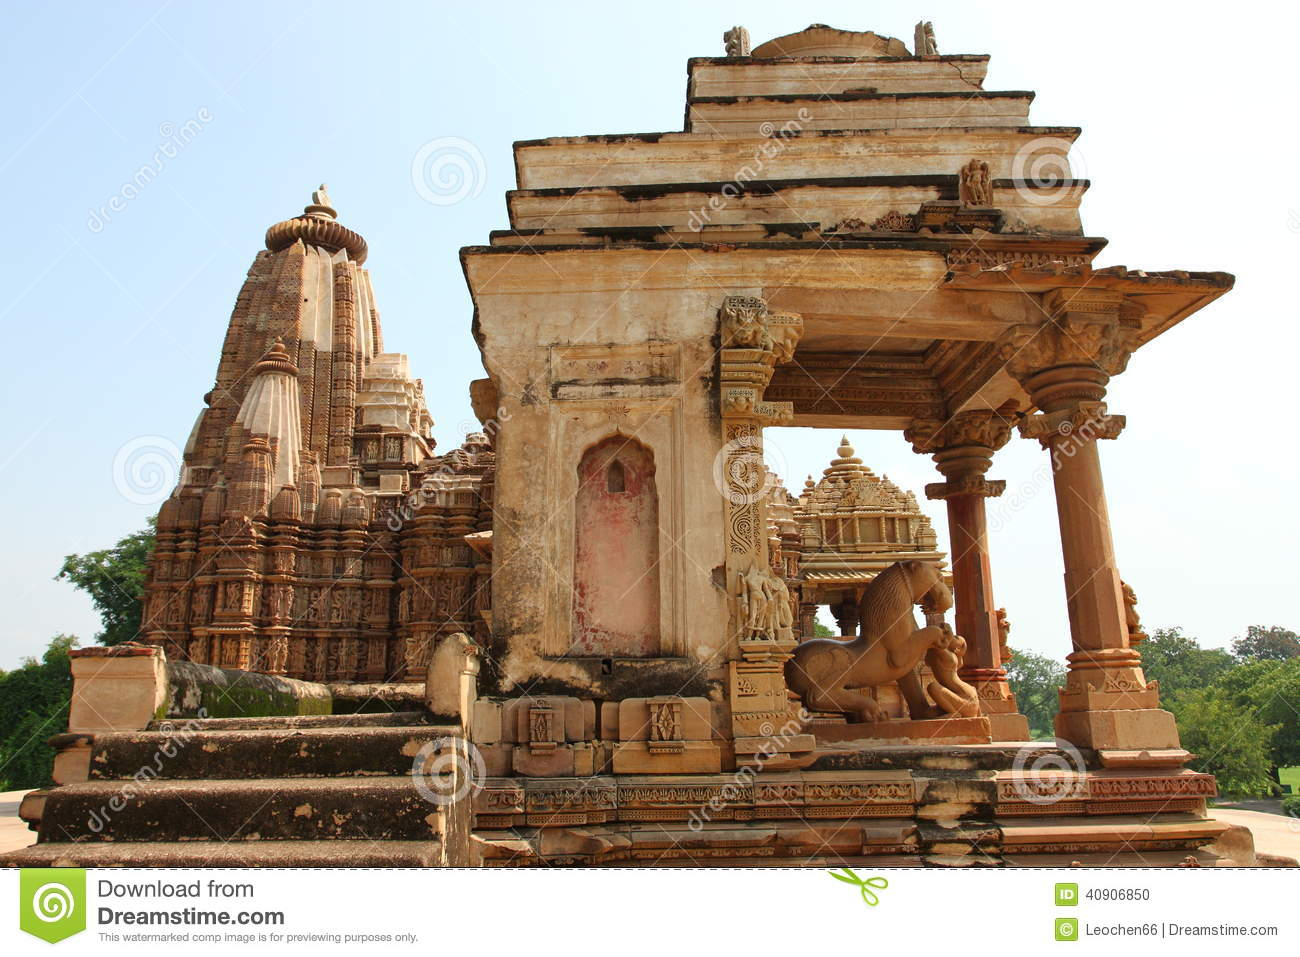 Khajuraho temples and their erotic sculptures, India